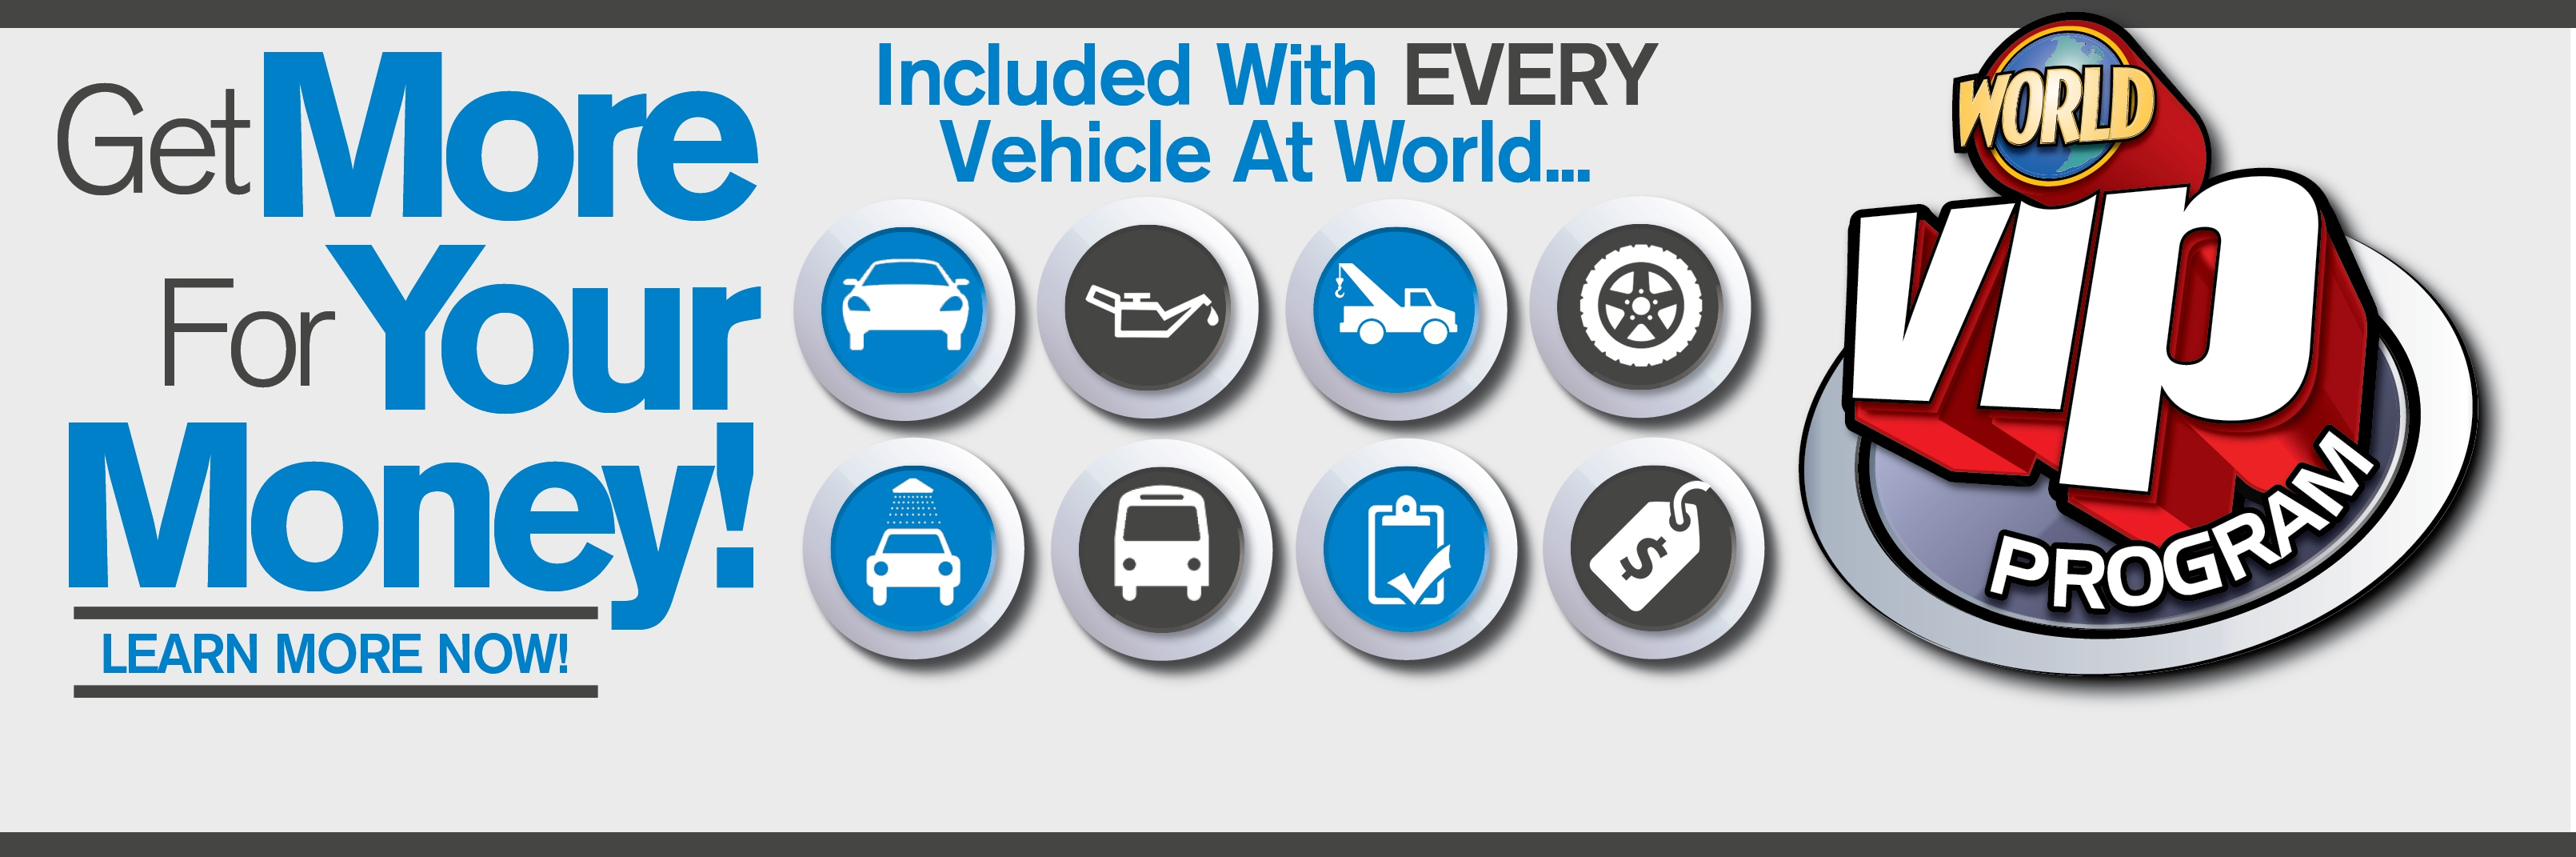 WORLD Jeep Chrysler Dodge Ram Trucks New Chrysler Dodge Jeep - Car sign with namesrepairs all world automotive